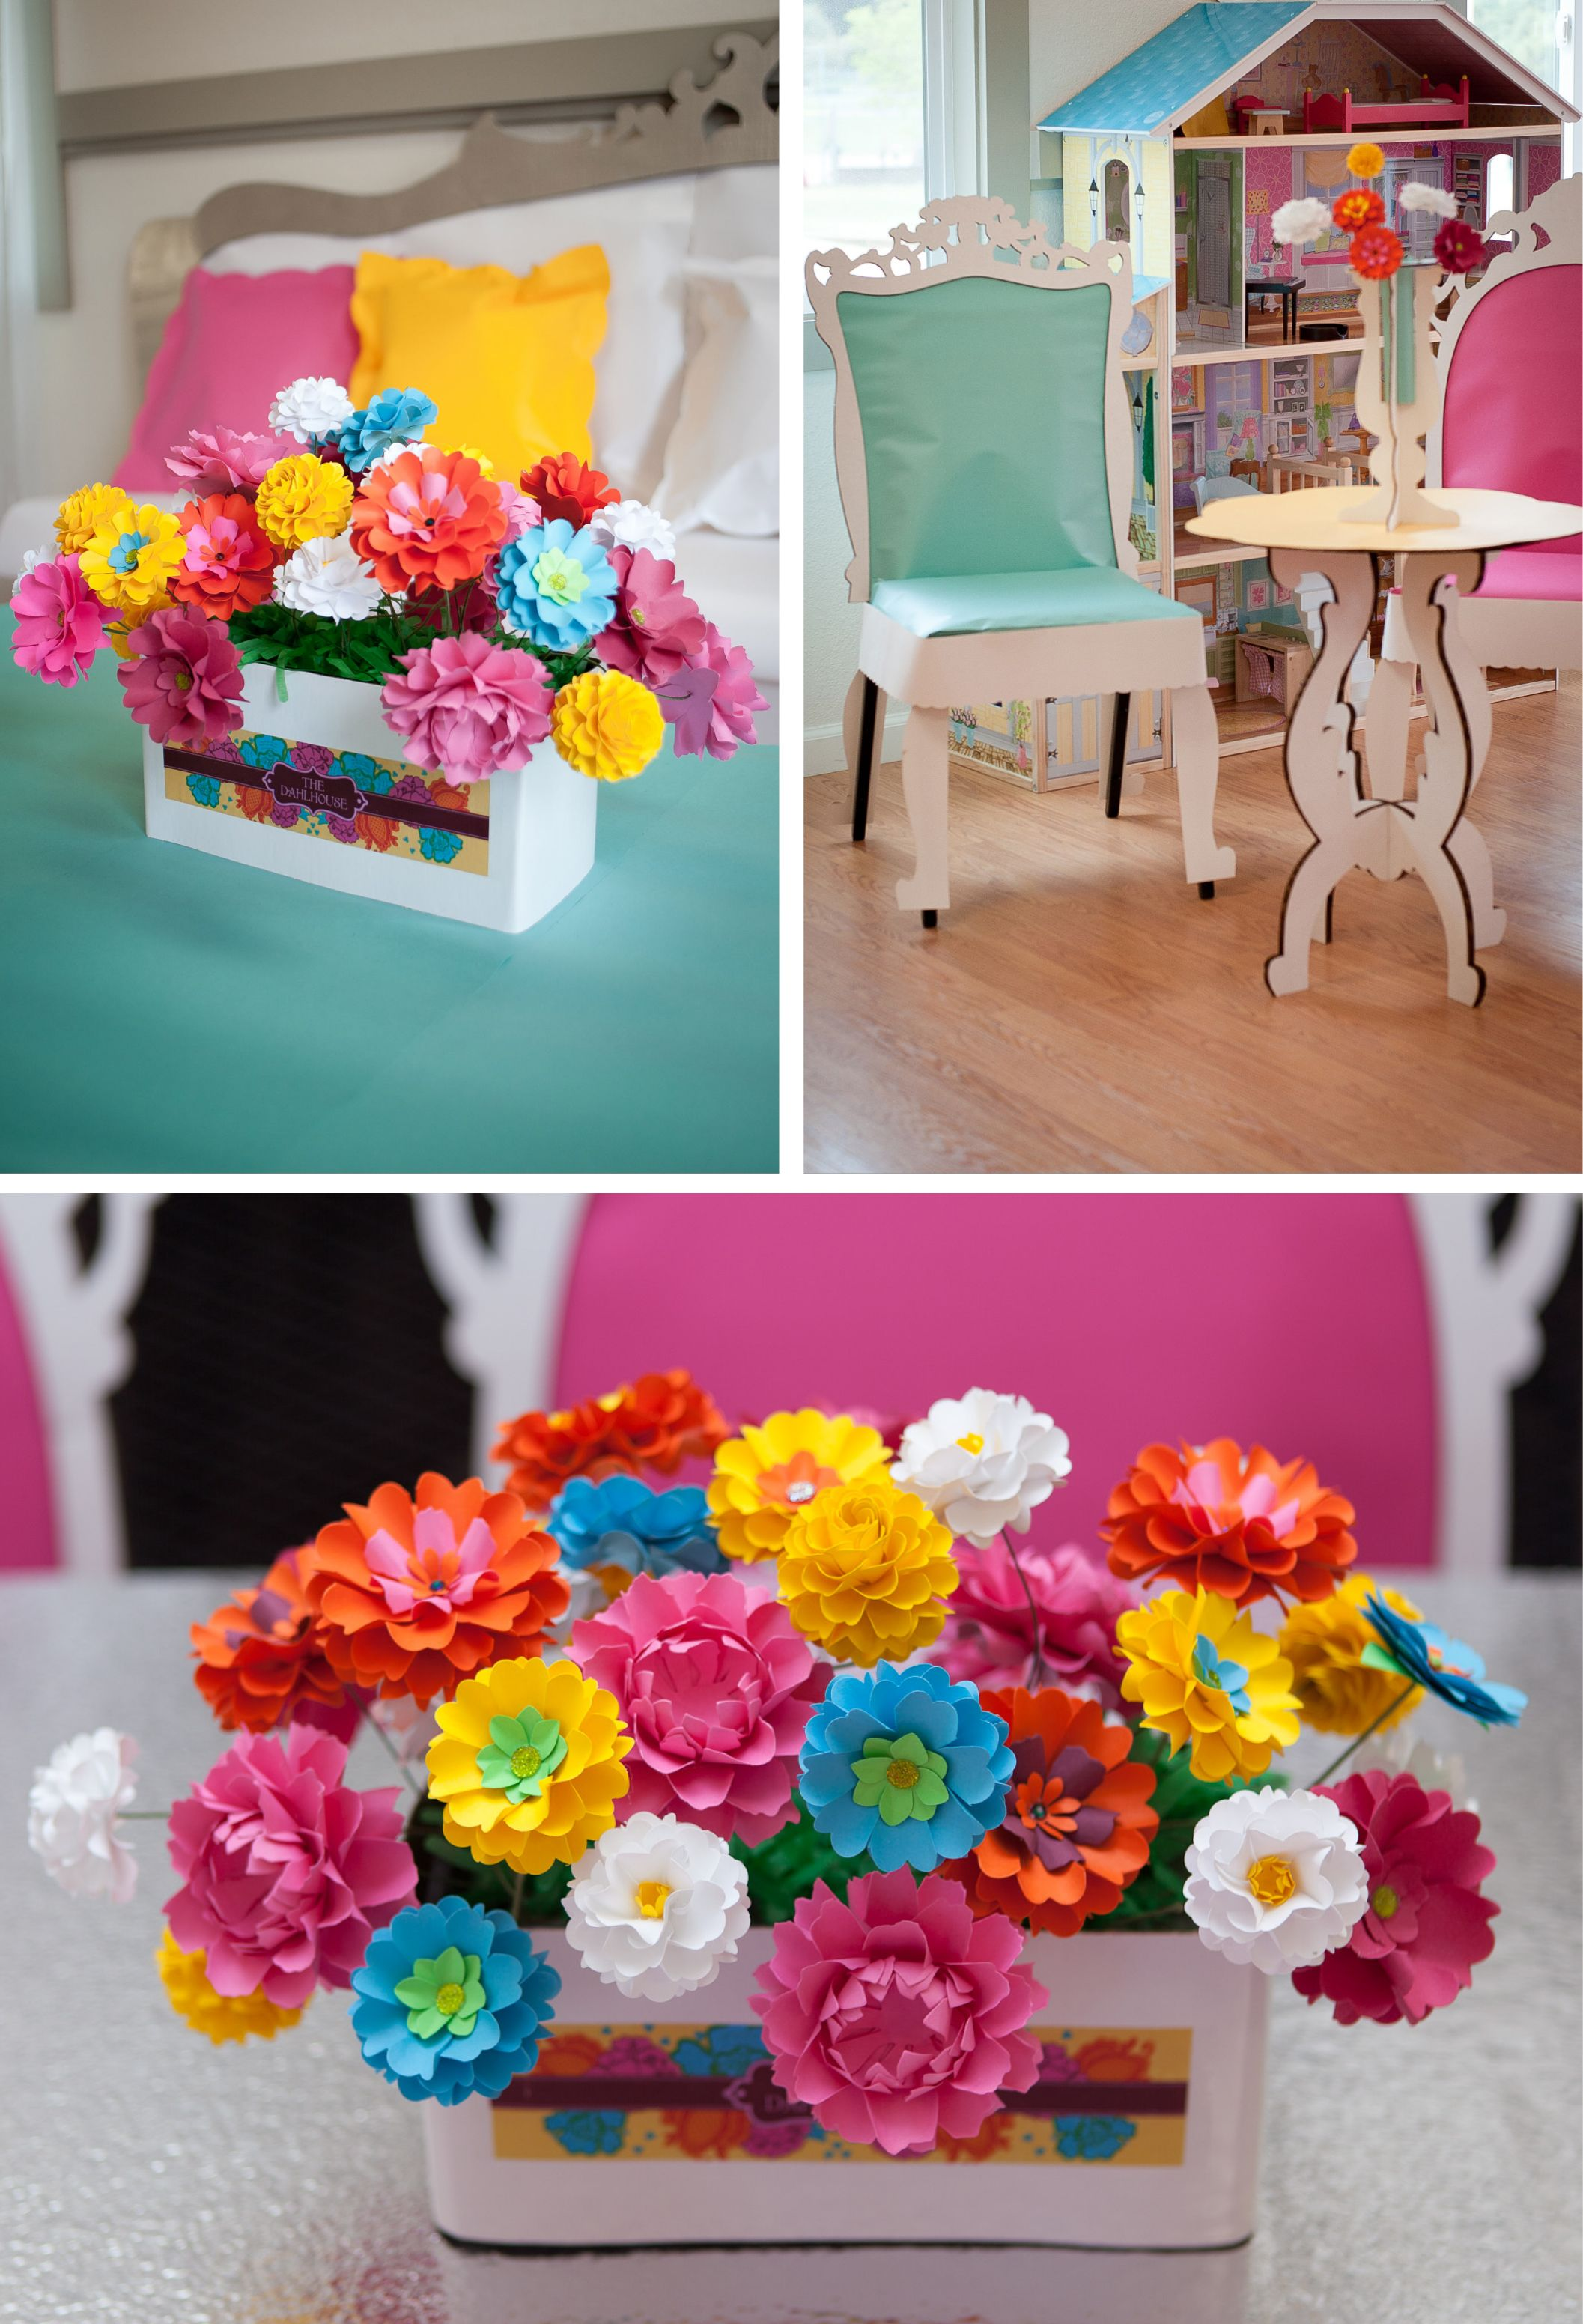 Handmade paper flowers designed by Dragonfly Expression - dollhouse party designed by Erin Borges.